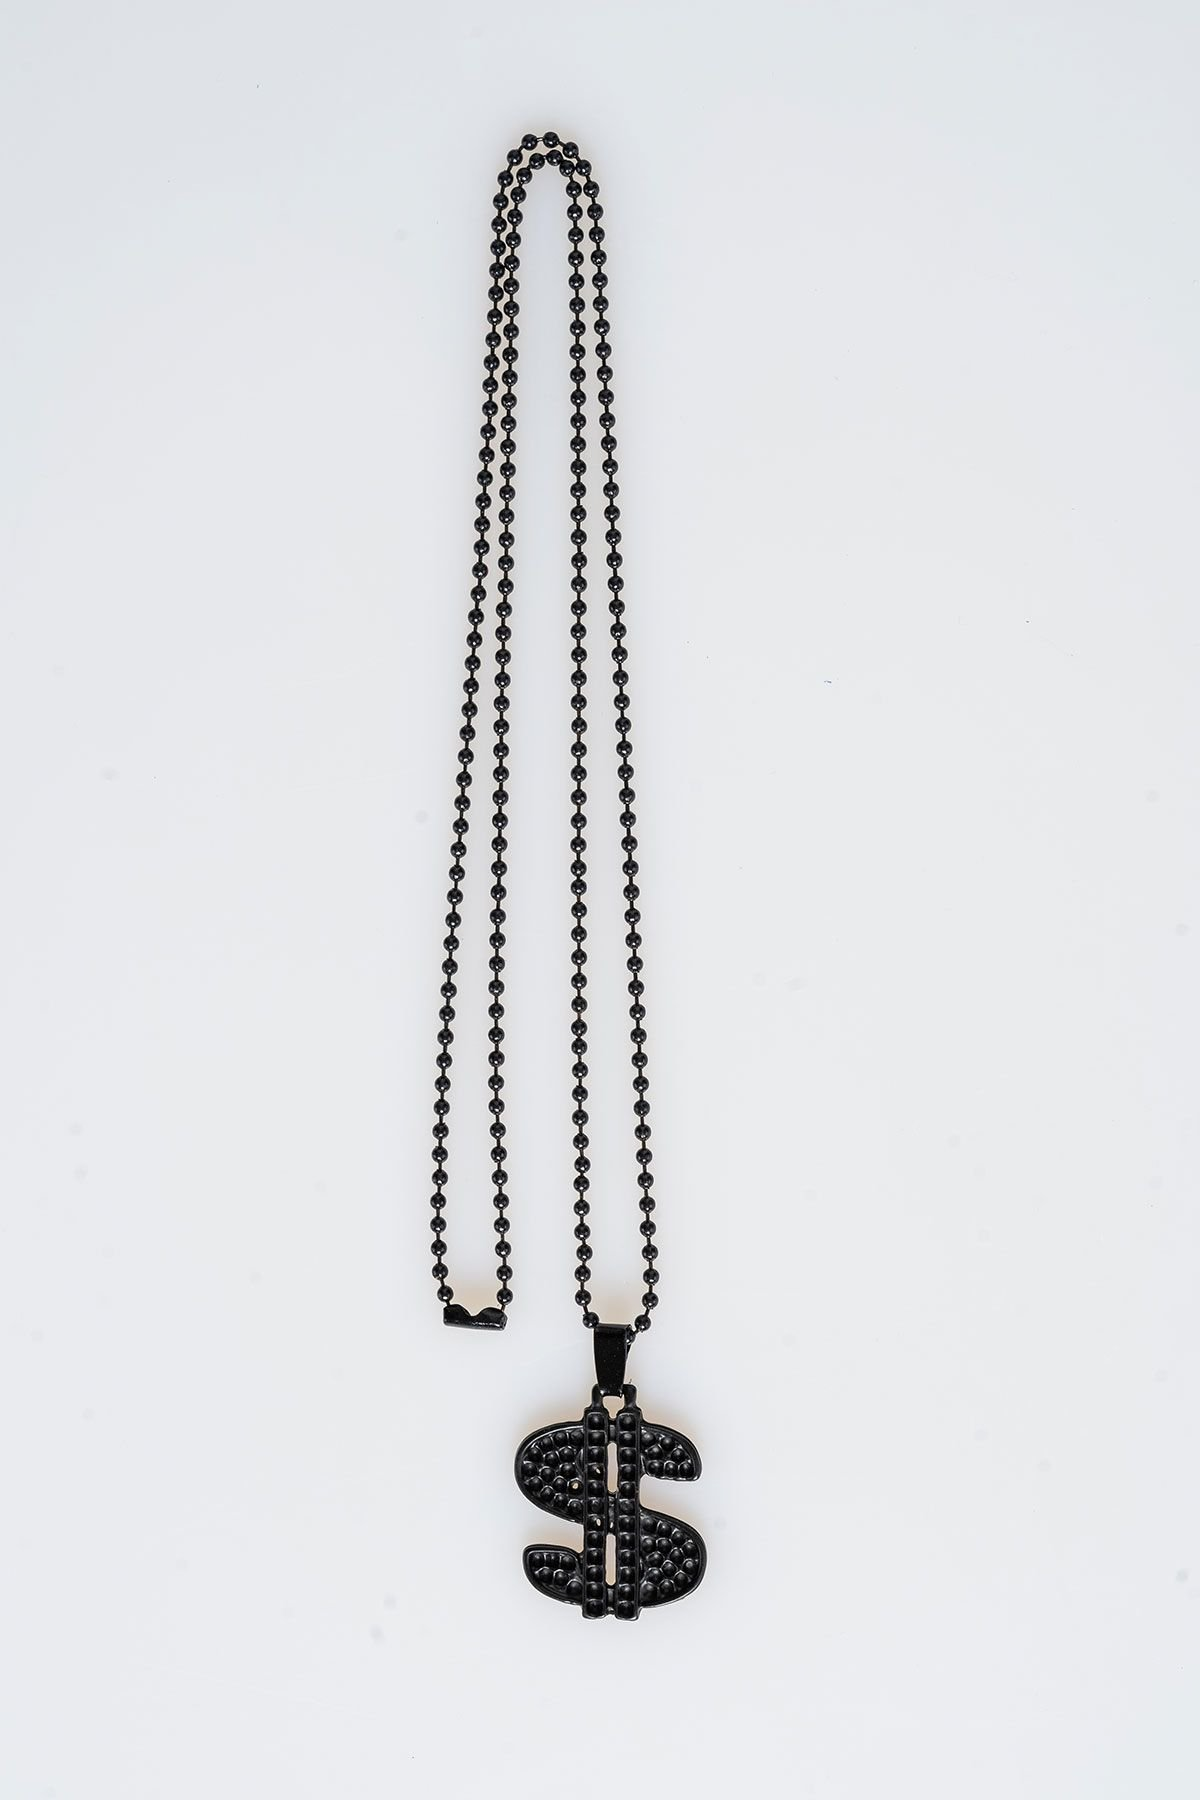 Pegia Metal Neacklace With Leather Case 19KL22 Black